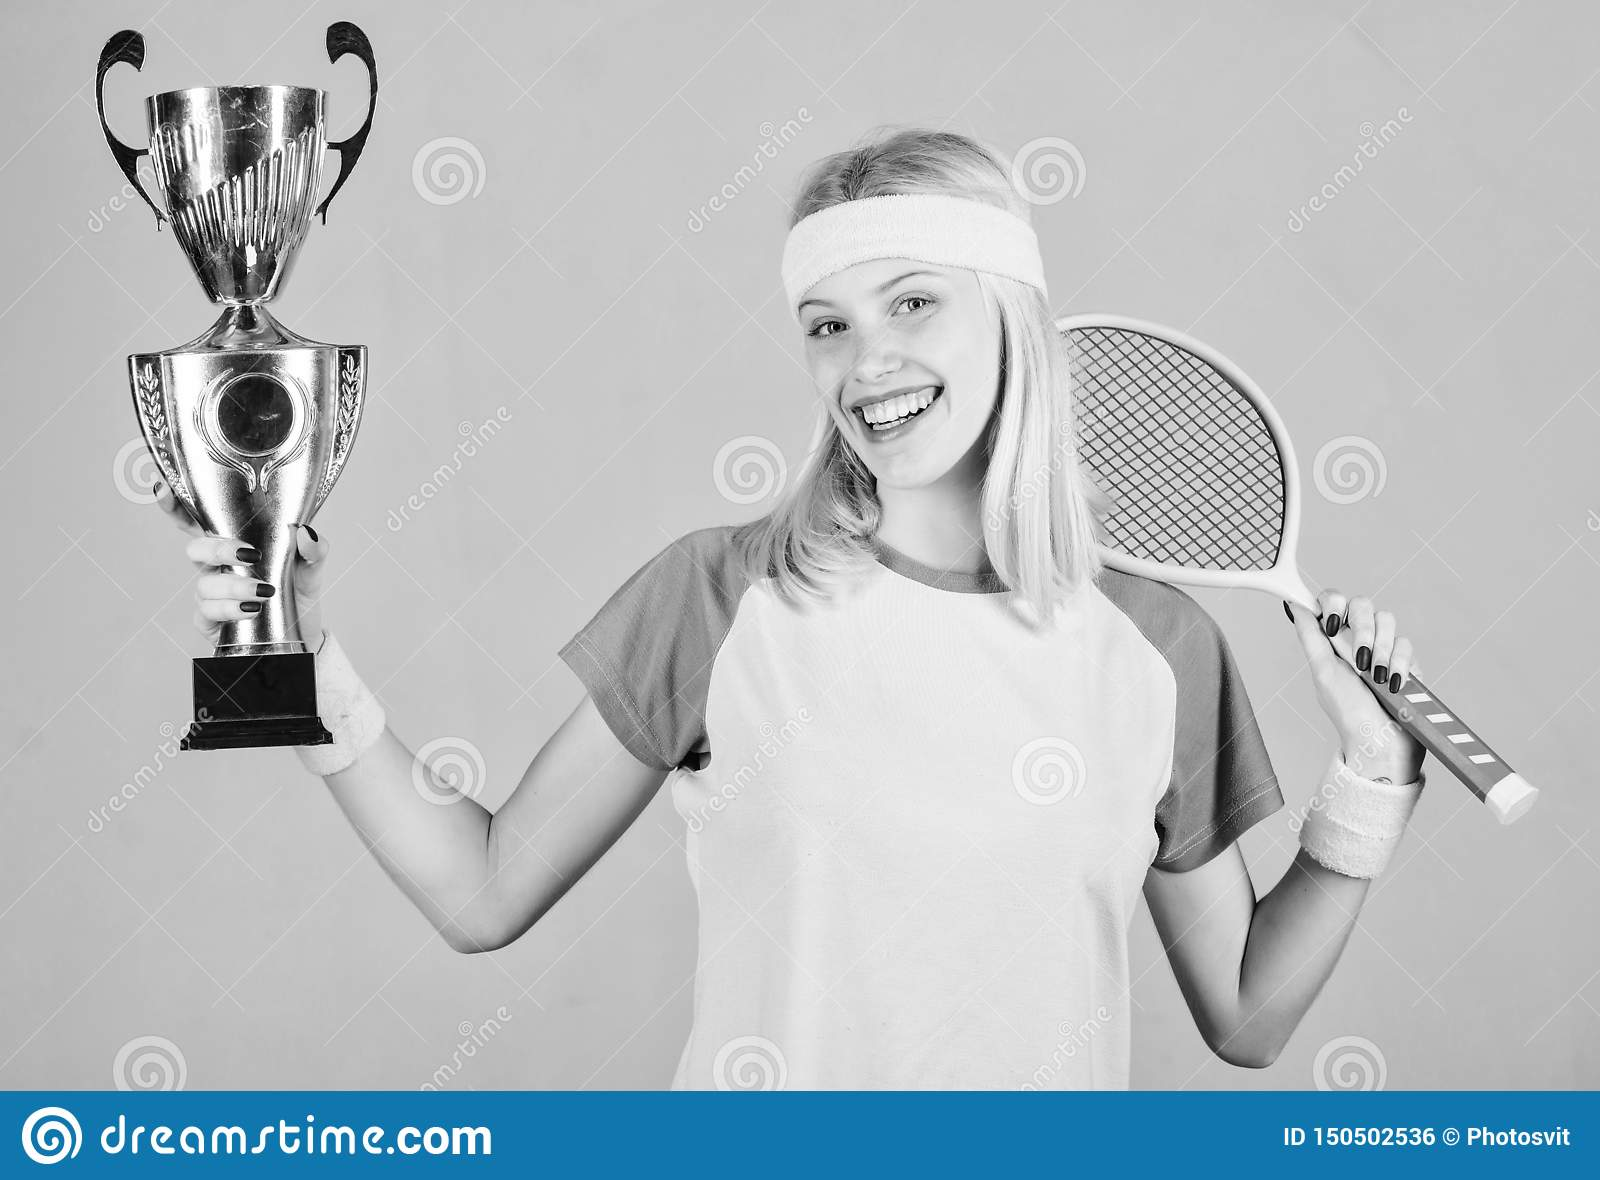 Win tennis game. Woman wear sport outfit. Tennis player win championship. First place. Sport achievement. Celebrate